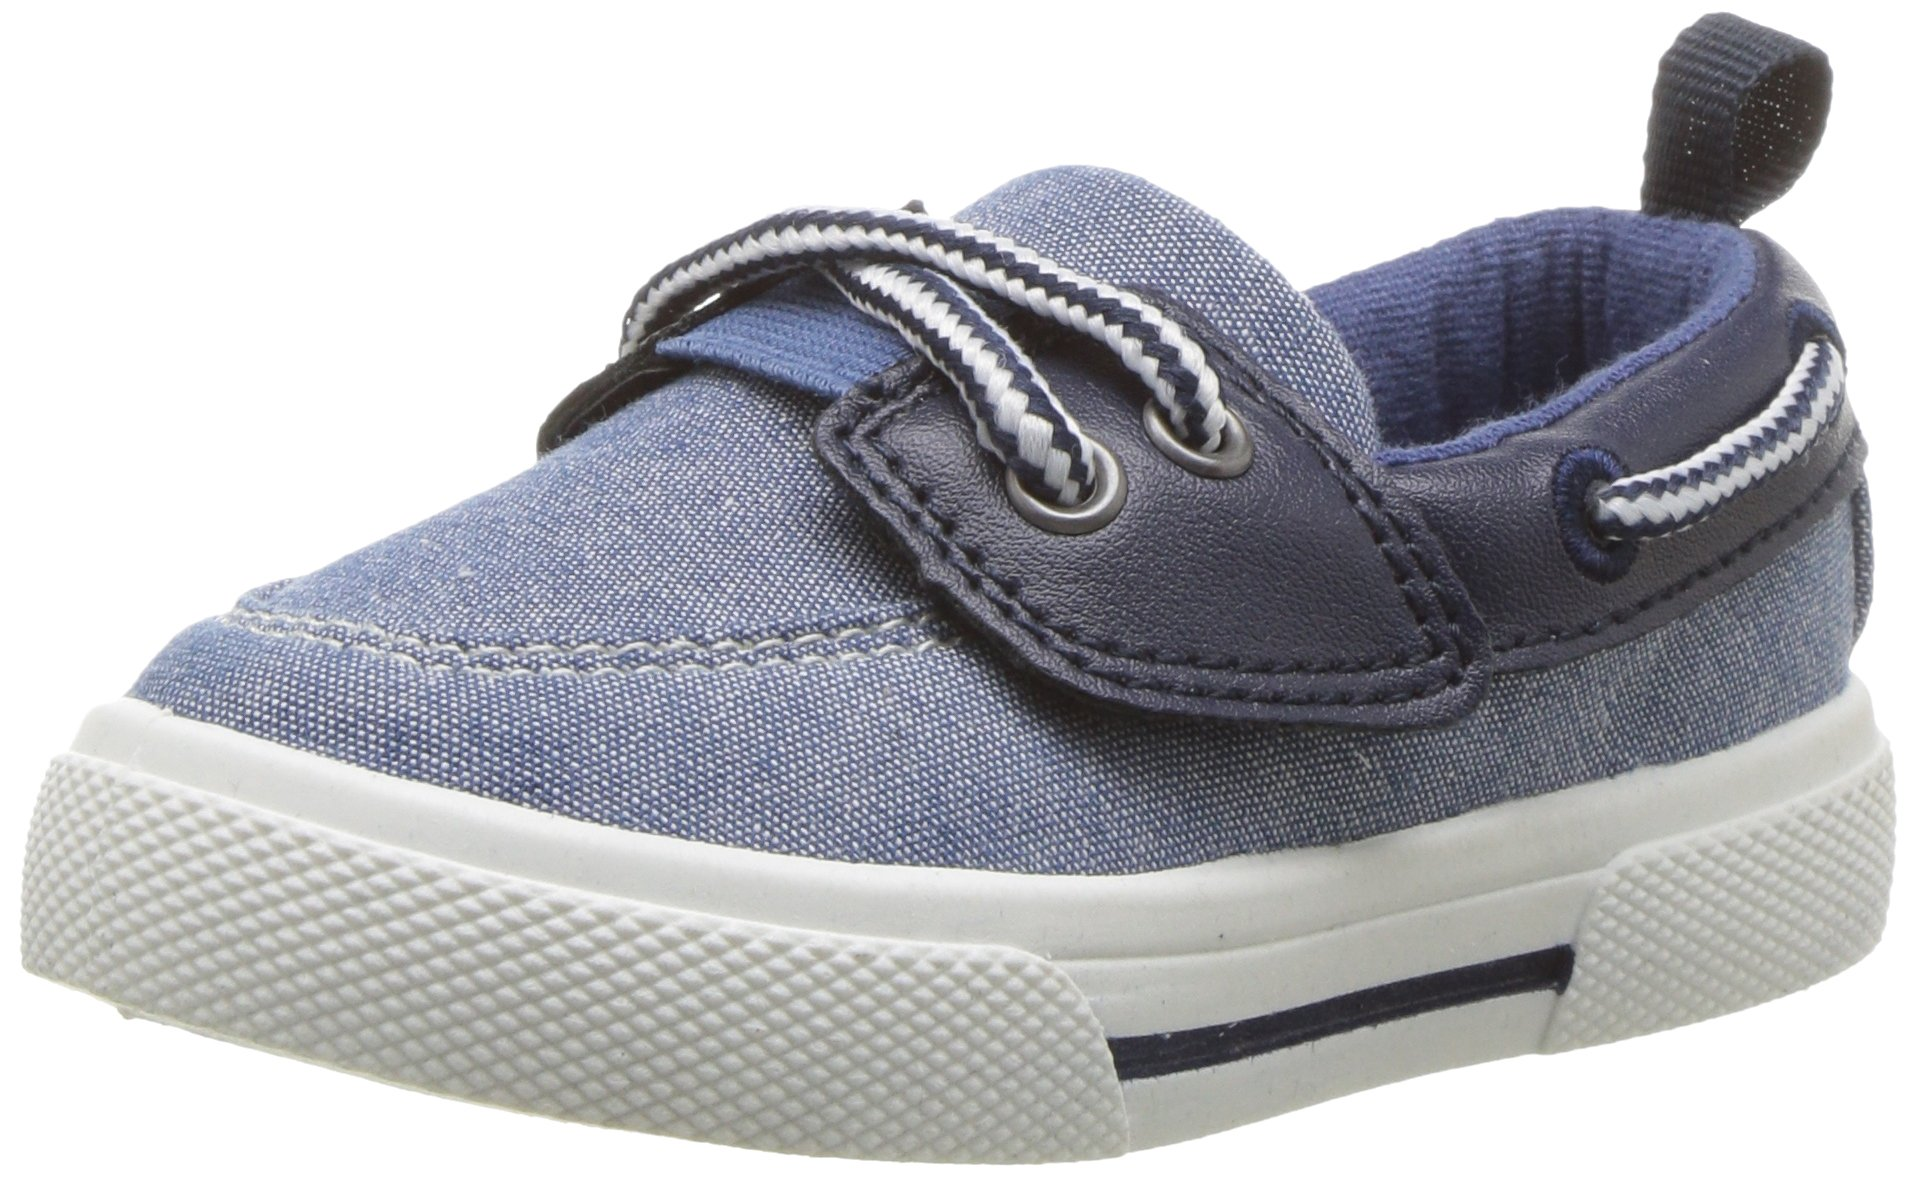 Carter's Boys' Cosmo Casual Slip-on Sneaker, Navy, 10 M US Toddler